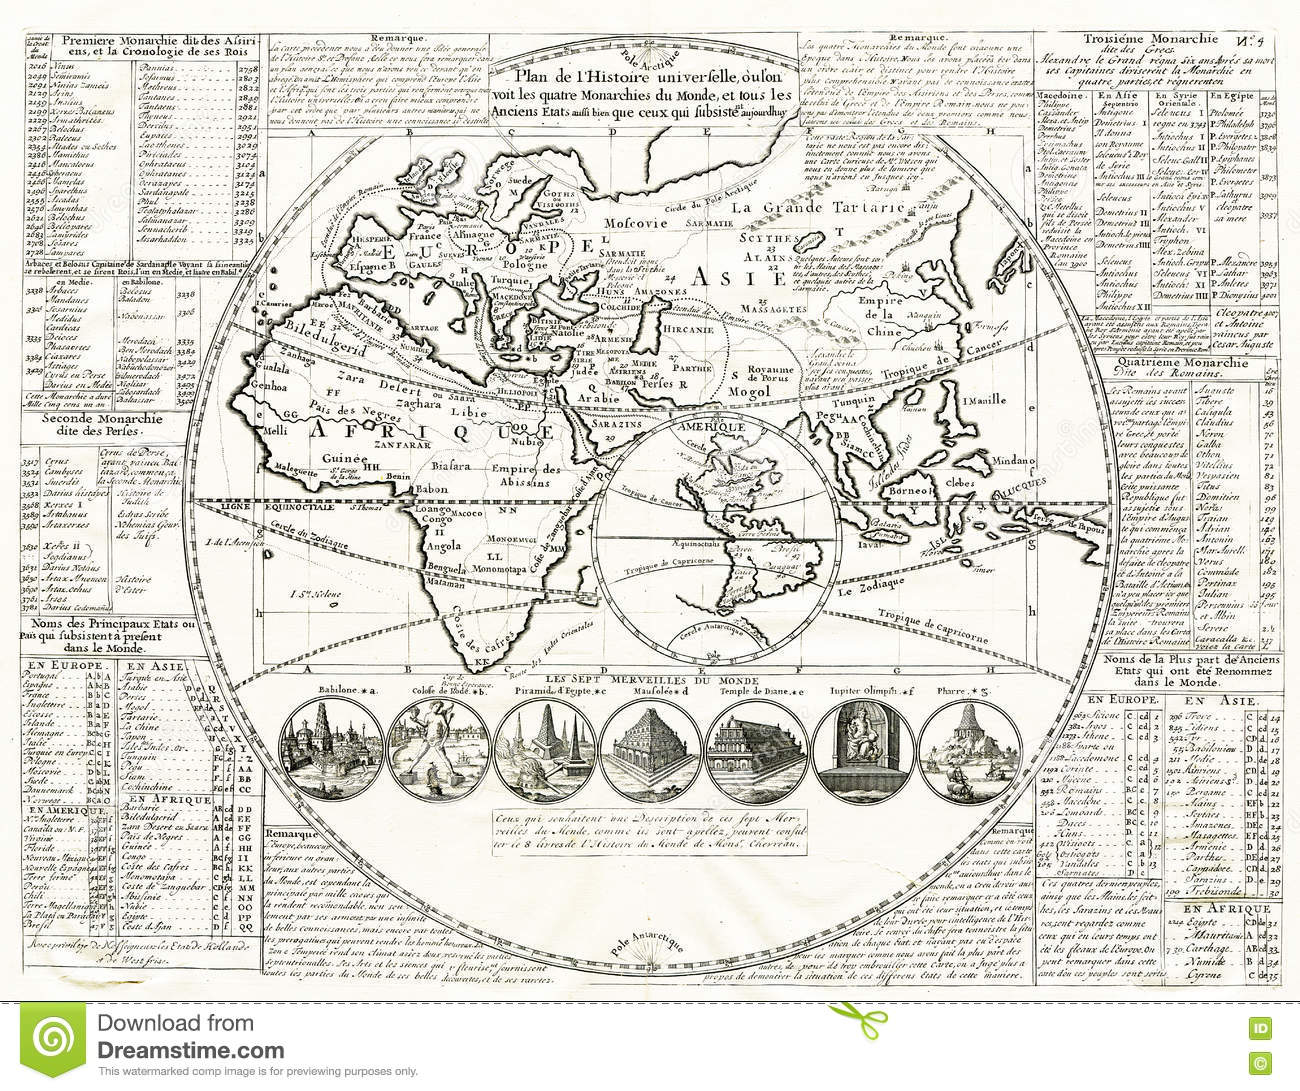 Antique world map stock photos royalty free stock images world map seven wonders of the ancient world 1707 image is taken from an gumiabroncs Images